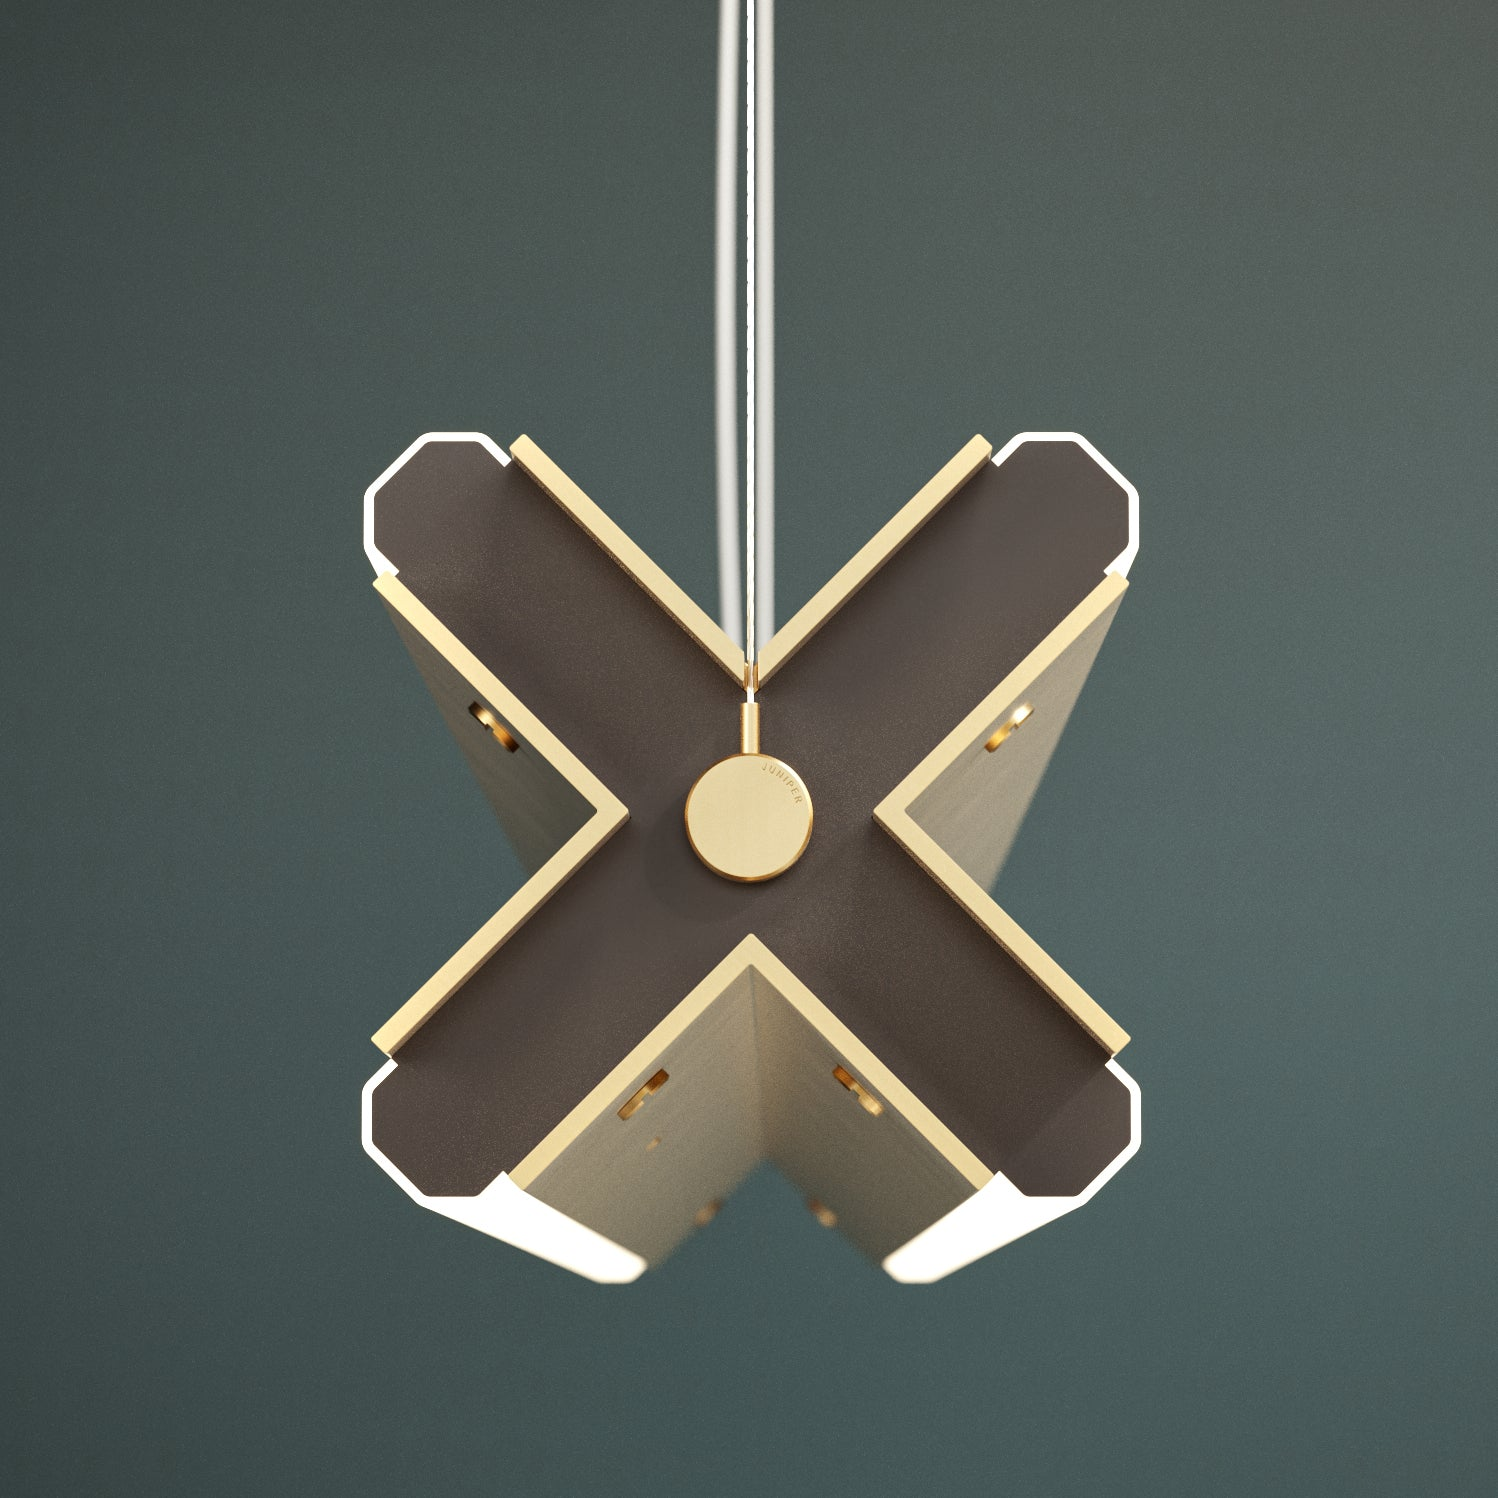 Axis X Suspension Light